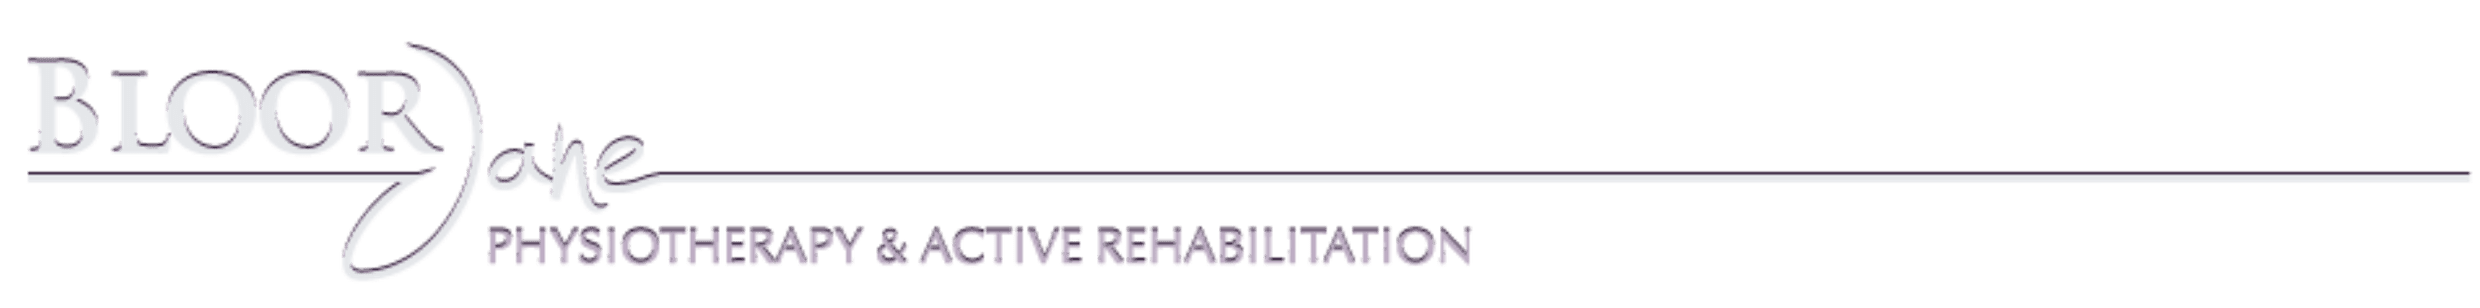 Bloor Jane Physiotherapy & Active Rehabilitation